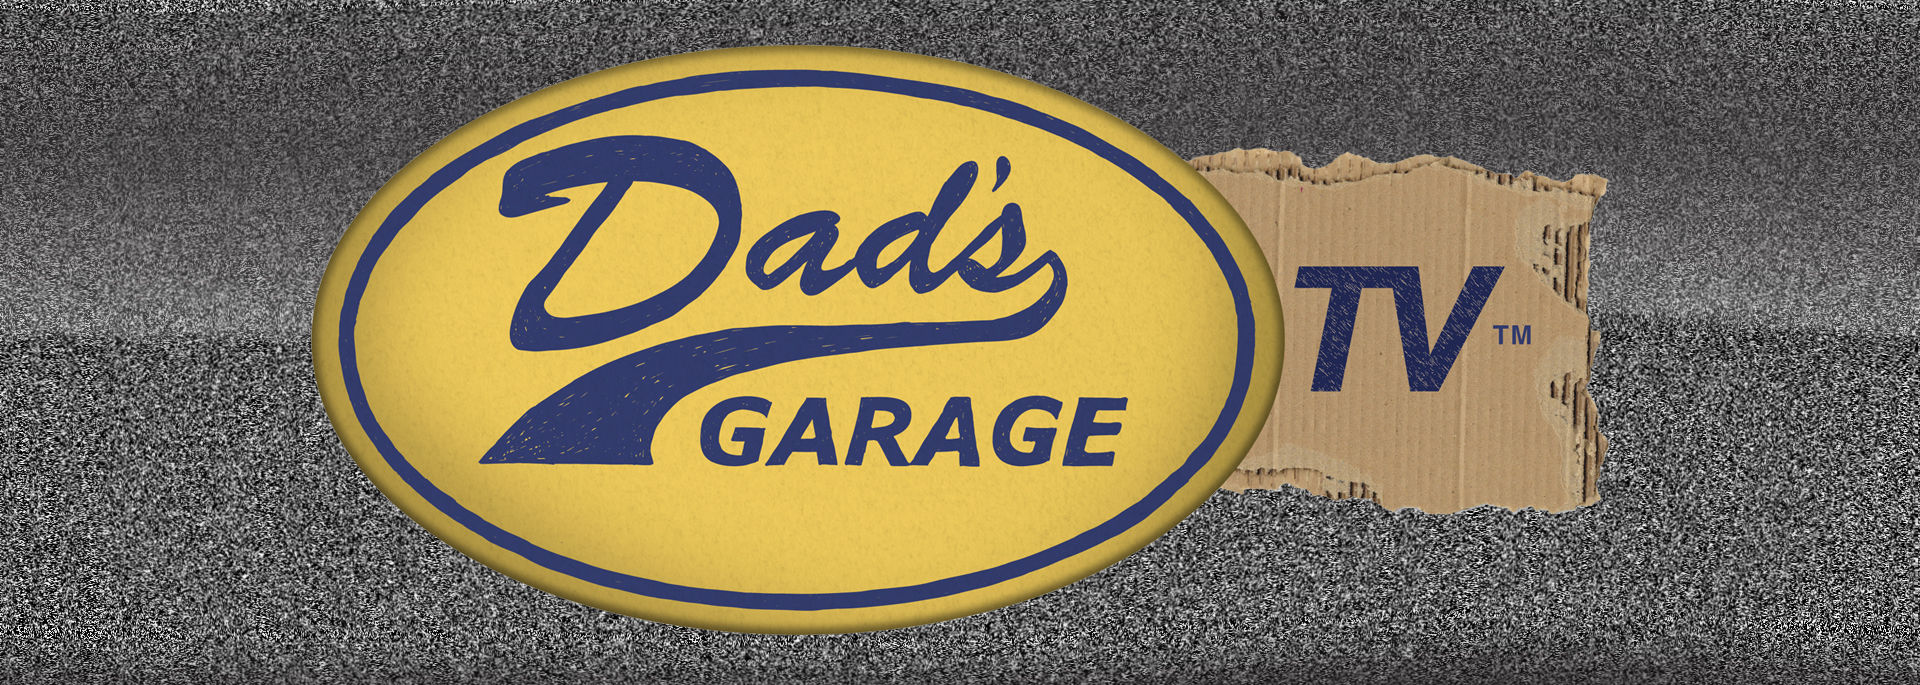 Dad's Garage channel